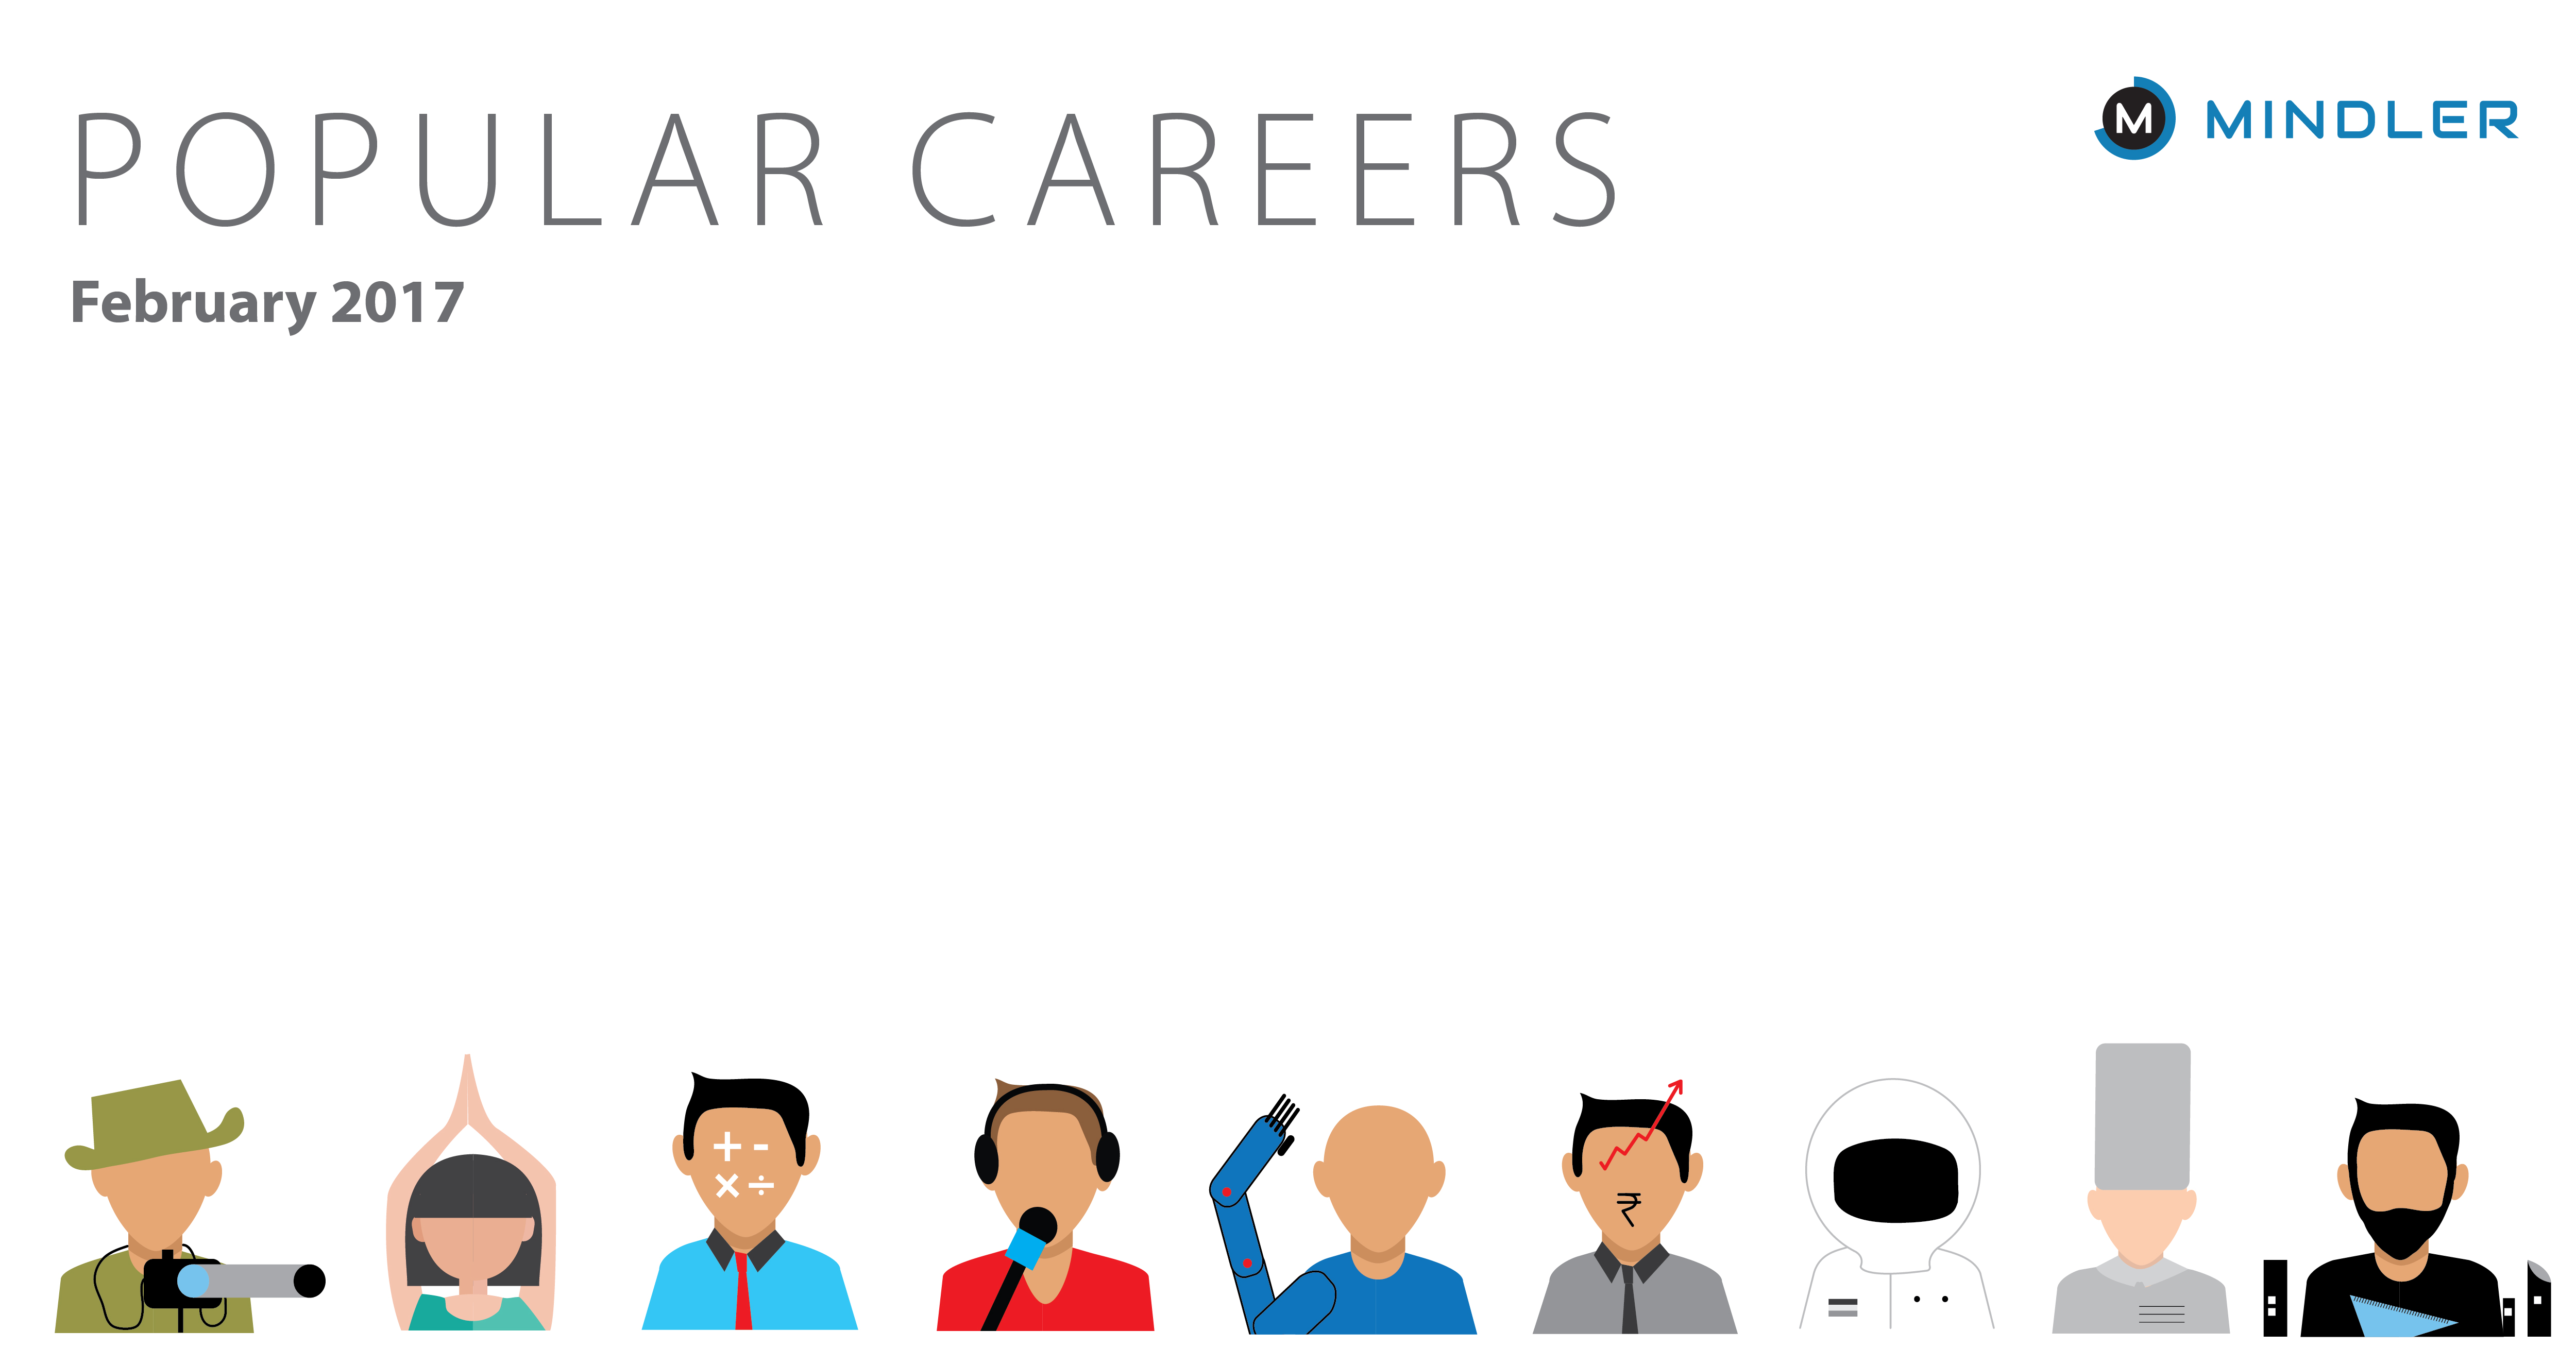 7 Most Popular (And Most-Searched) Careers In February 2017 - Mindler 4ddb363a7bf